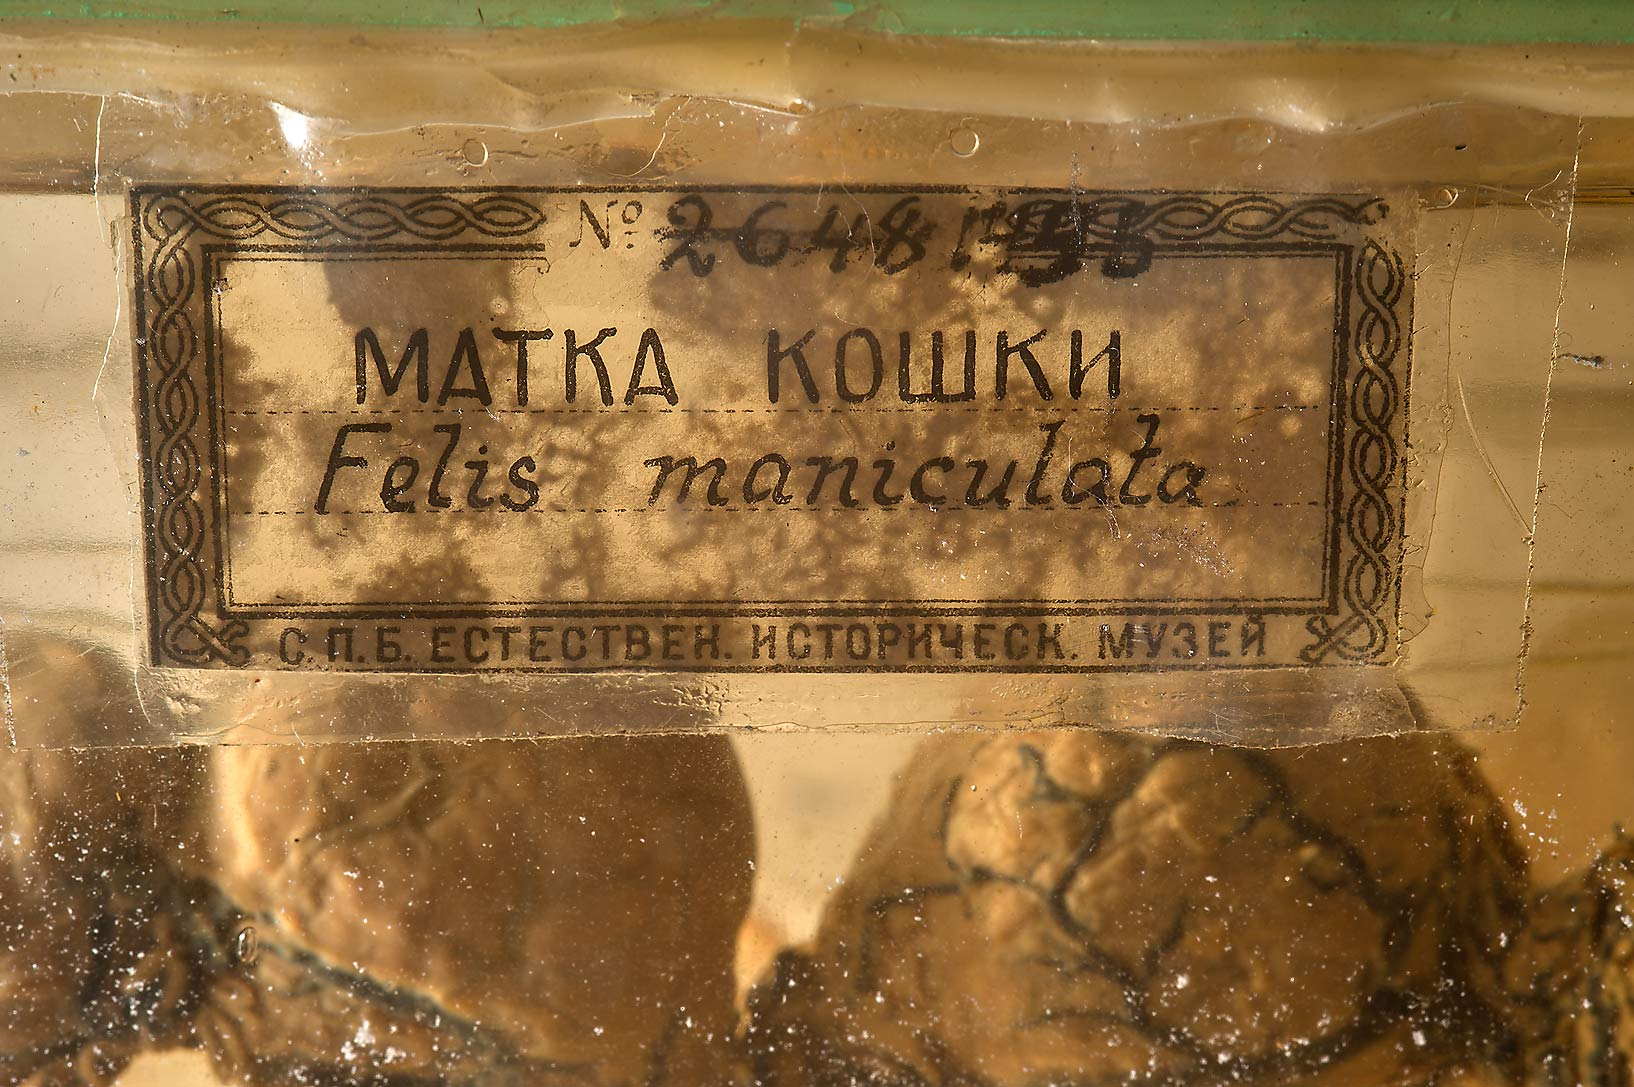 Pickled cat's fetus No. 2648 1456 in Zoological Museum. St.Petersburg, Russia